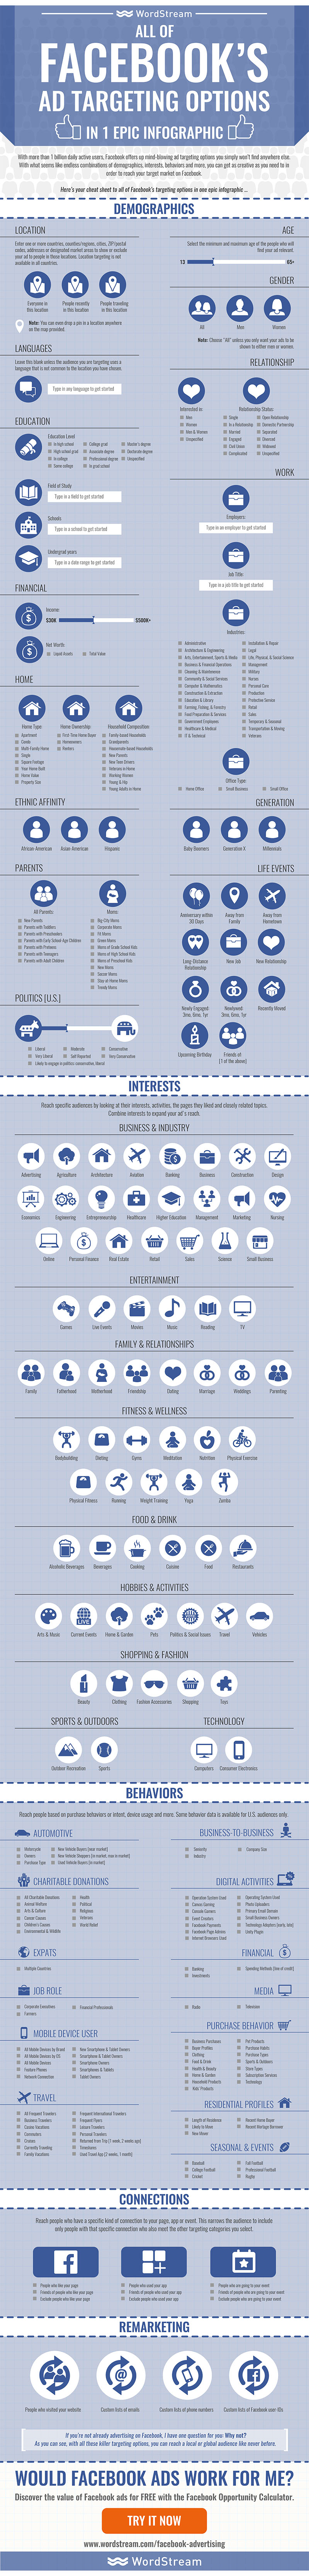 facebook-ad-targeting-options-infographic-wordstream